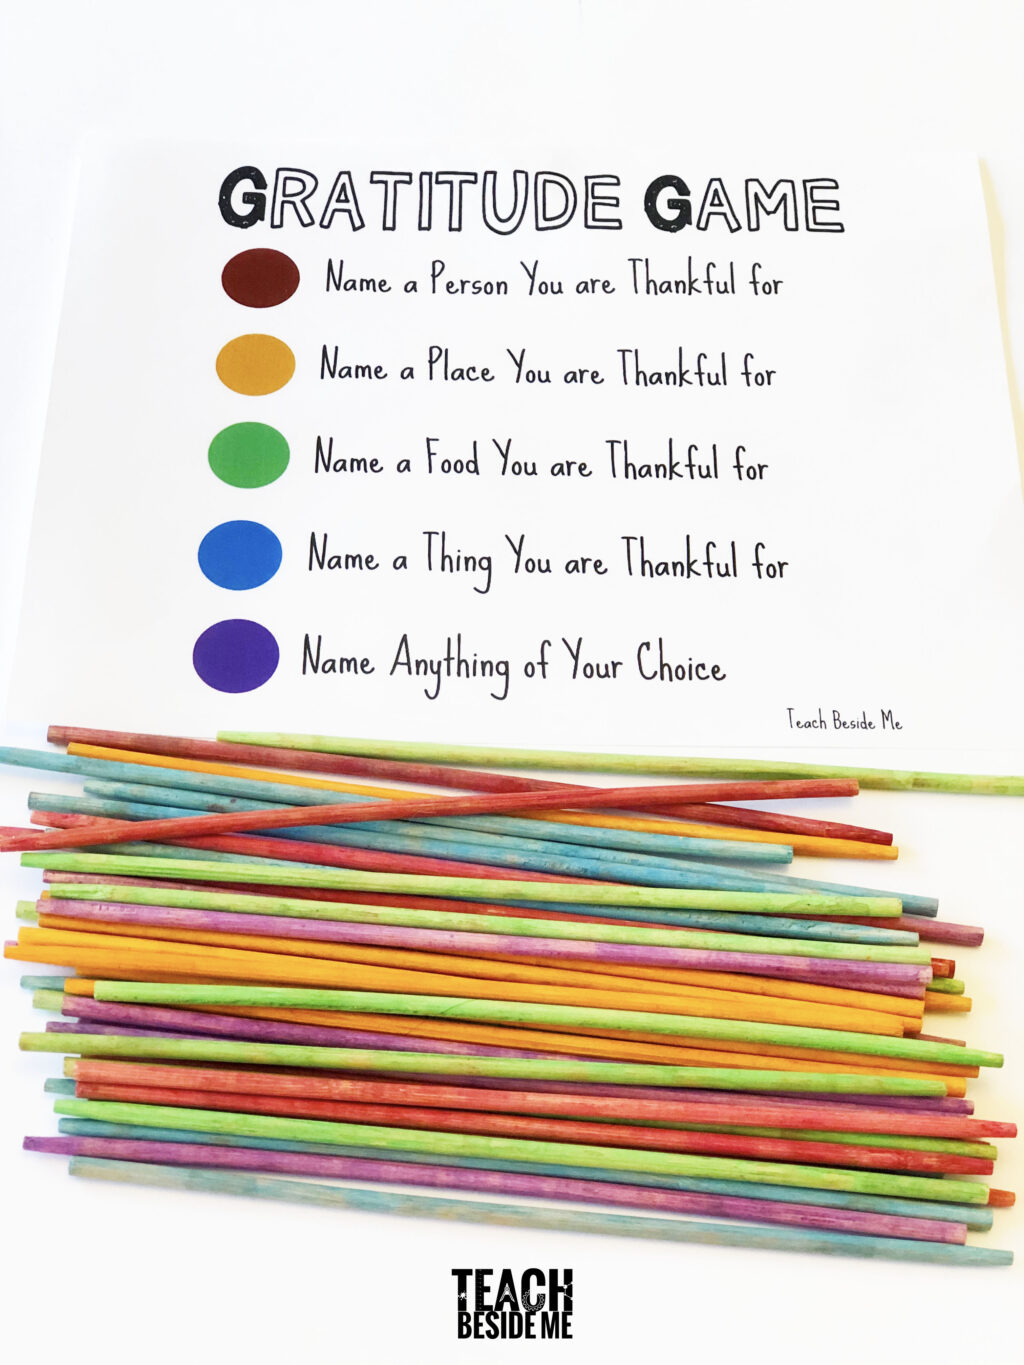 The Gratitude Game: Pick-Up Sticks – Teach Beside Me